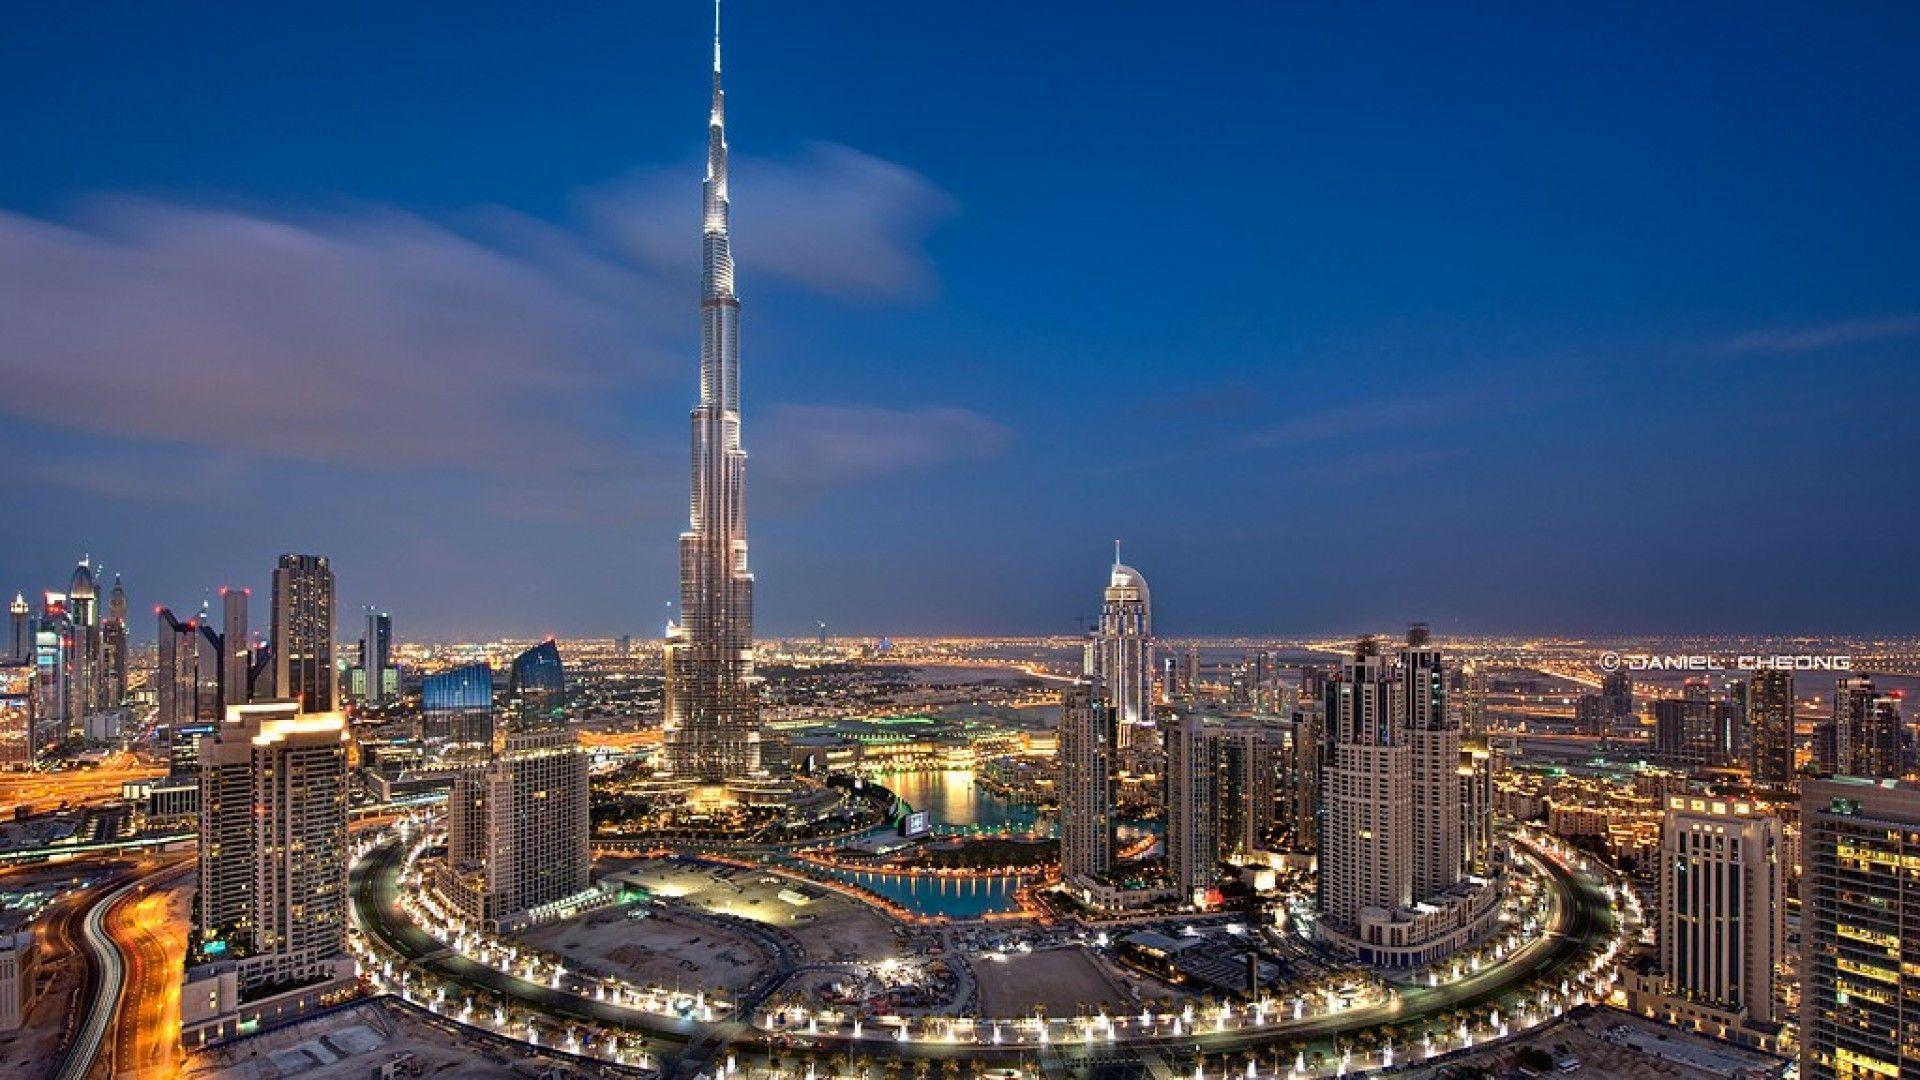 burj khalifa wallpapers - wallpaper cave